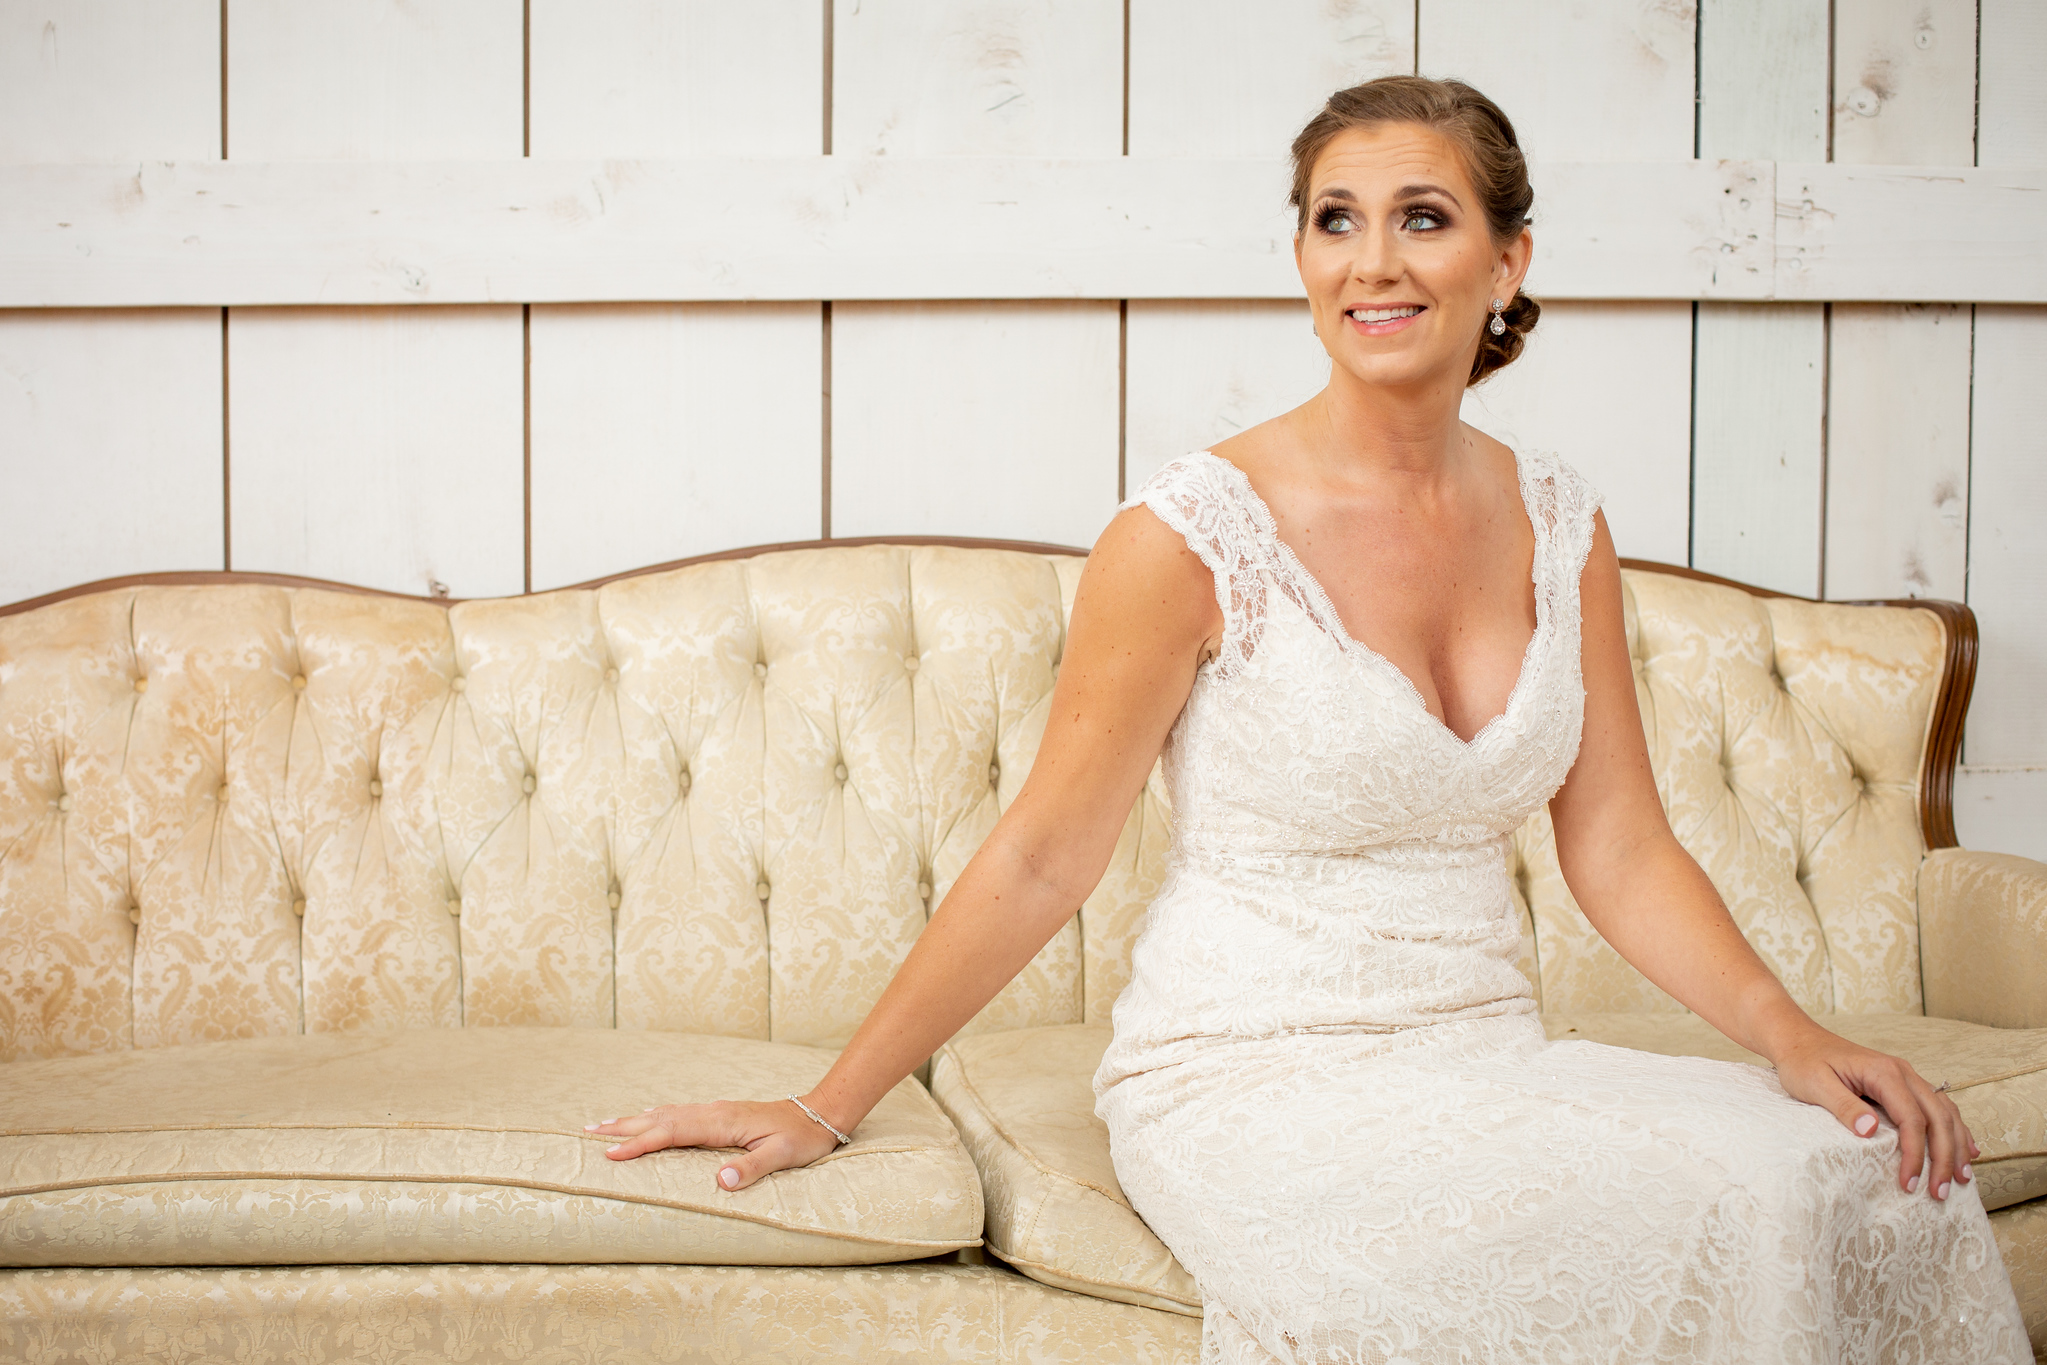 bride sitting on a classic antique cream-colored couch in front of rustic white wood wall